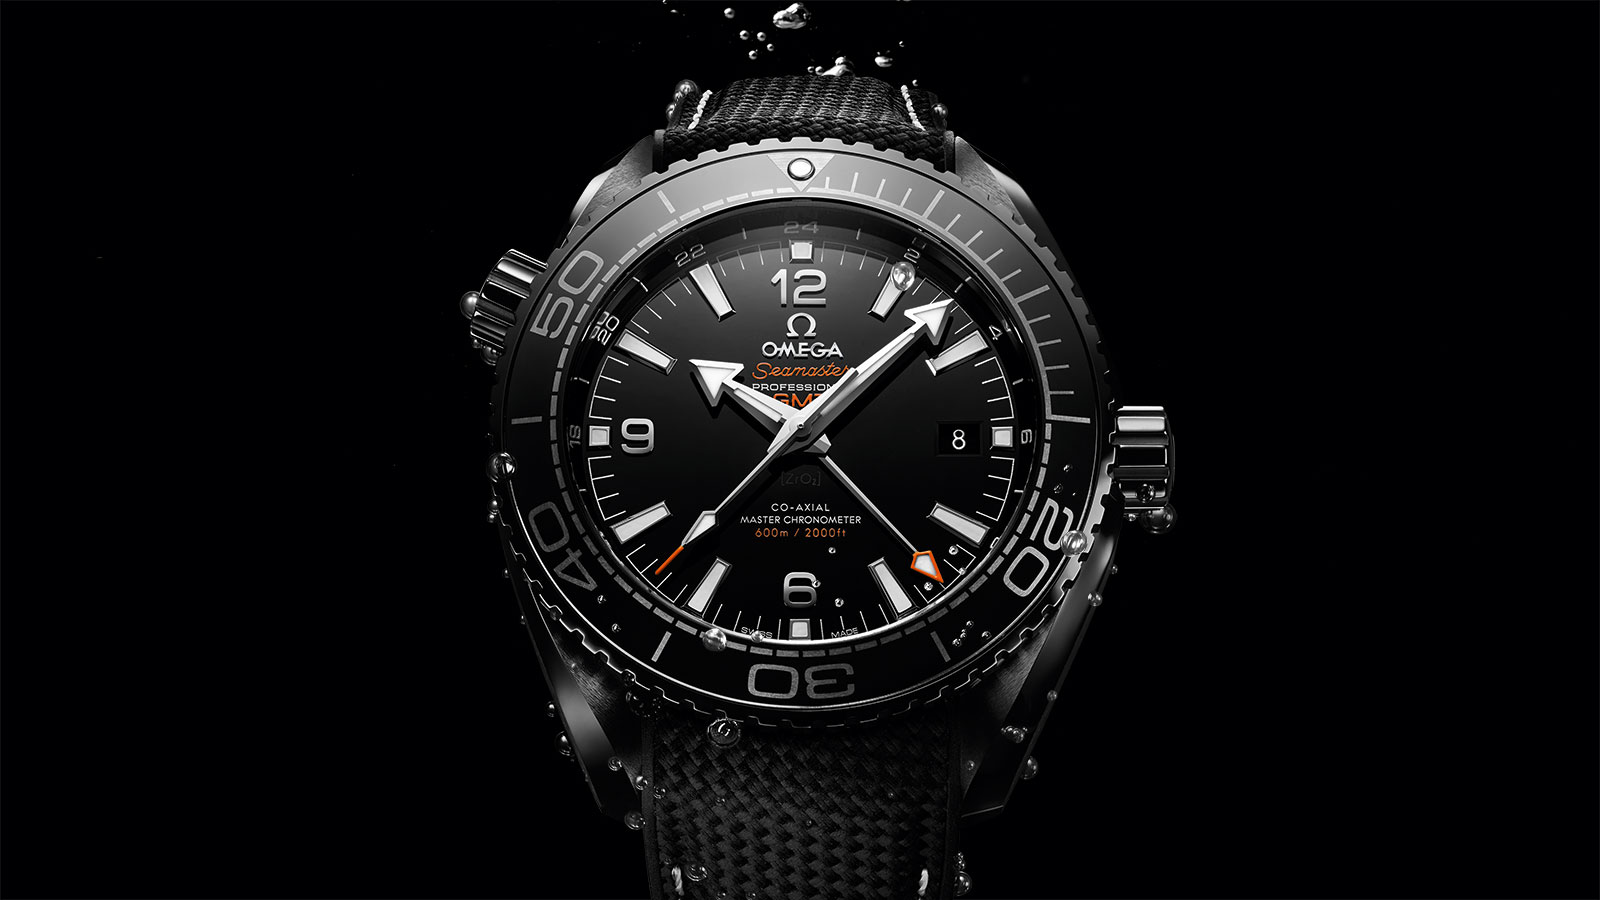 Seamaster プラネットオーシャン Planet Ocean 600M Omega Co‑Axial Master Chronometer GMT 45.5 mm ウォッチ - 215.92.46.22.01.001